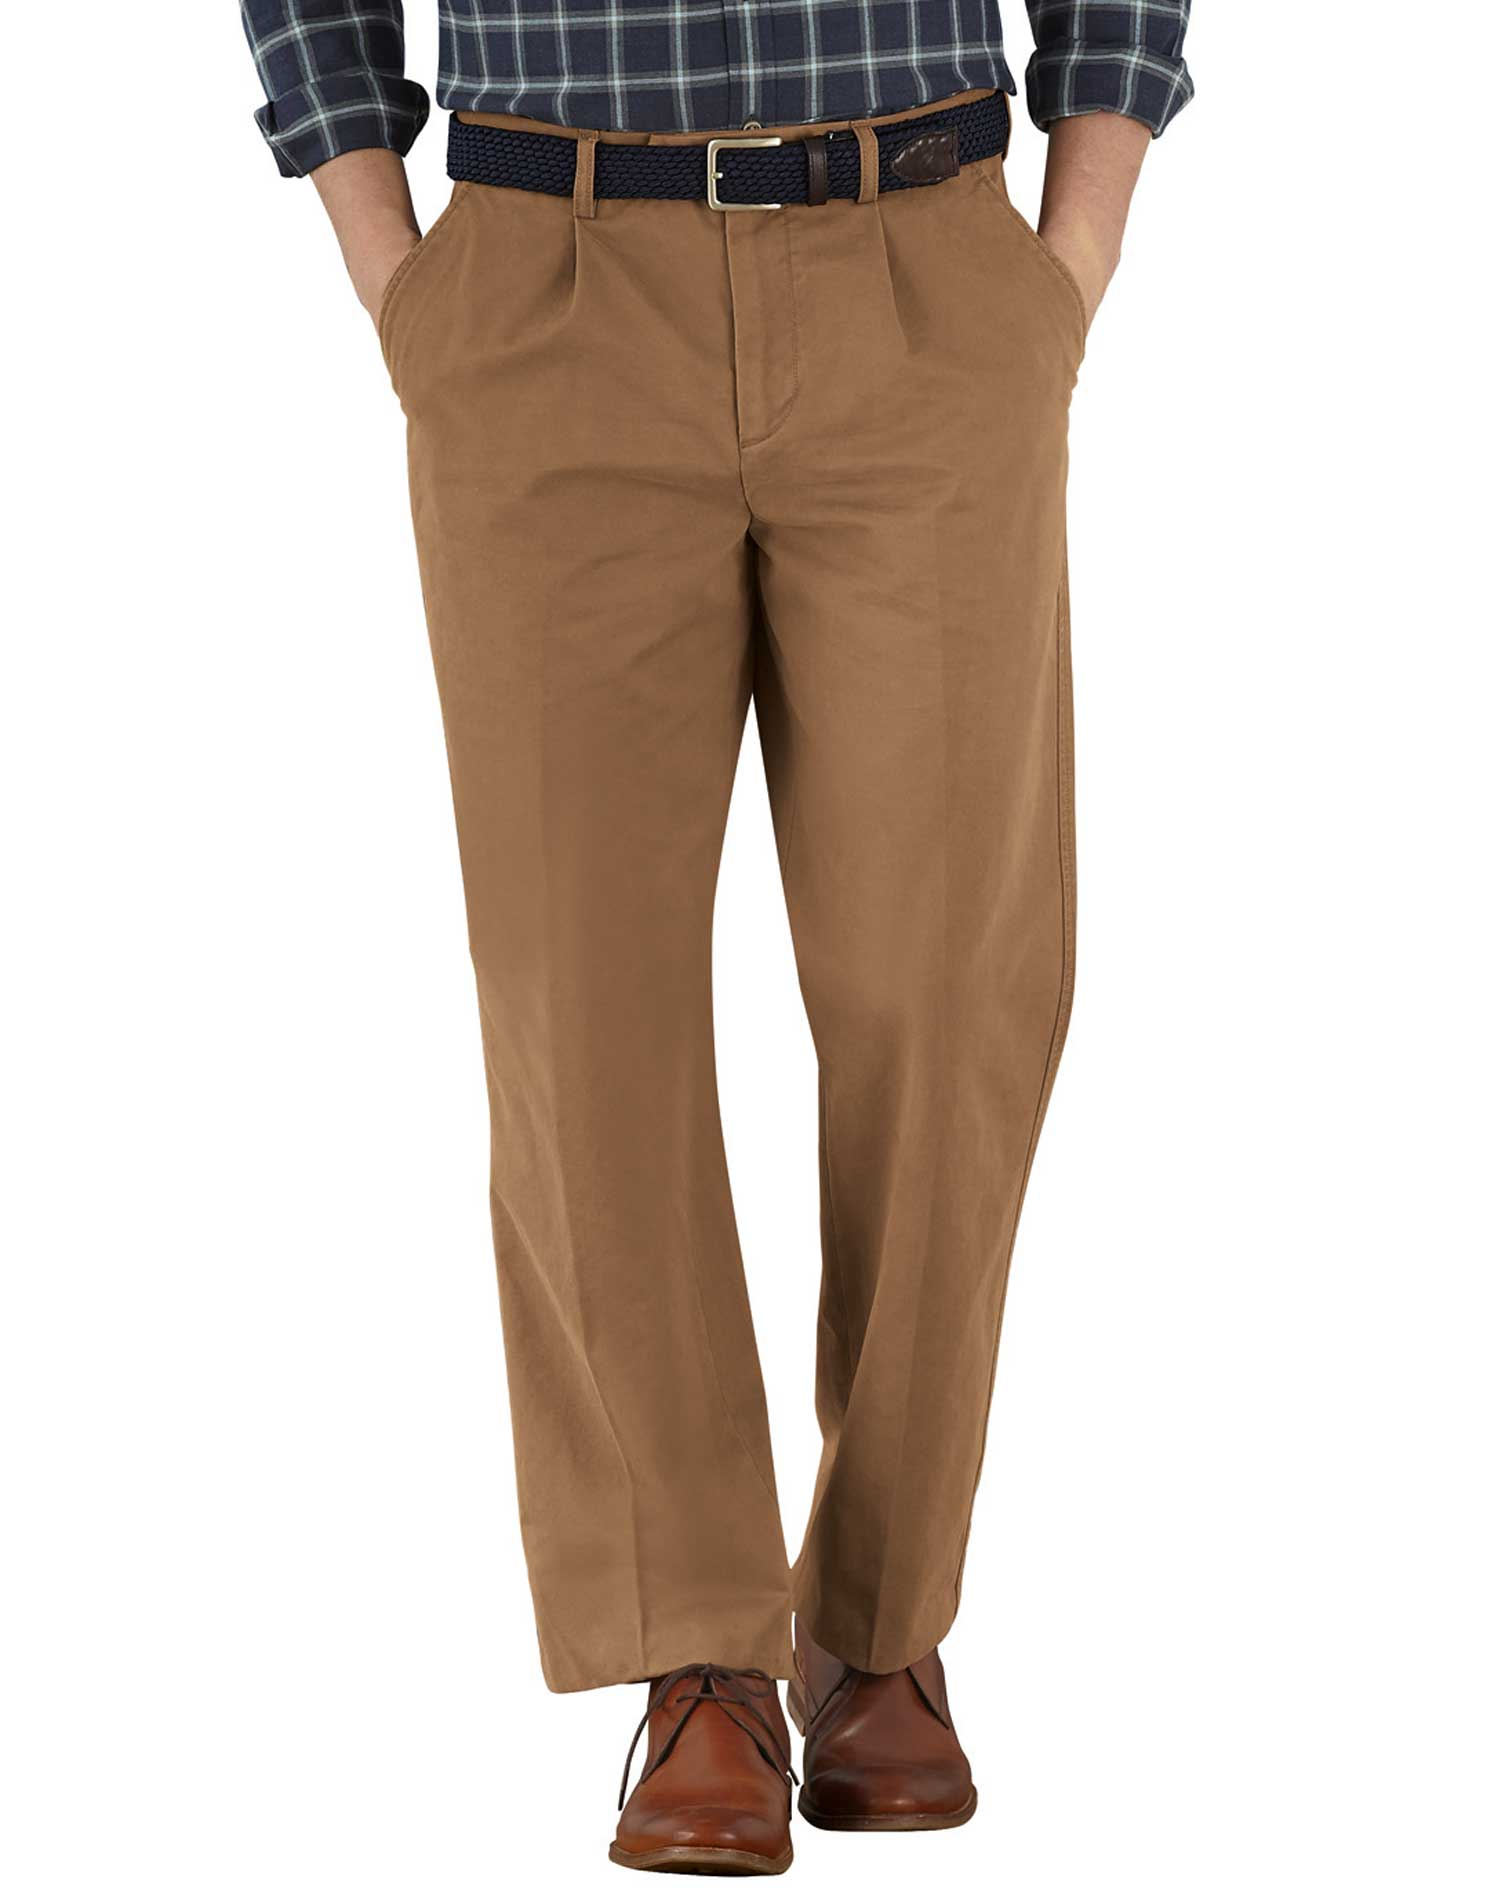 Camel Classic Fit Single Pleat Cotton Chino Trousers Size W42 L38 by Charles Tyrwhitt